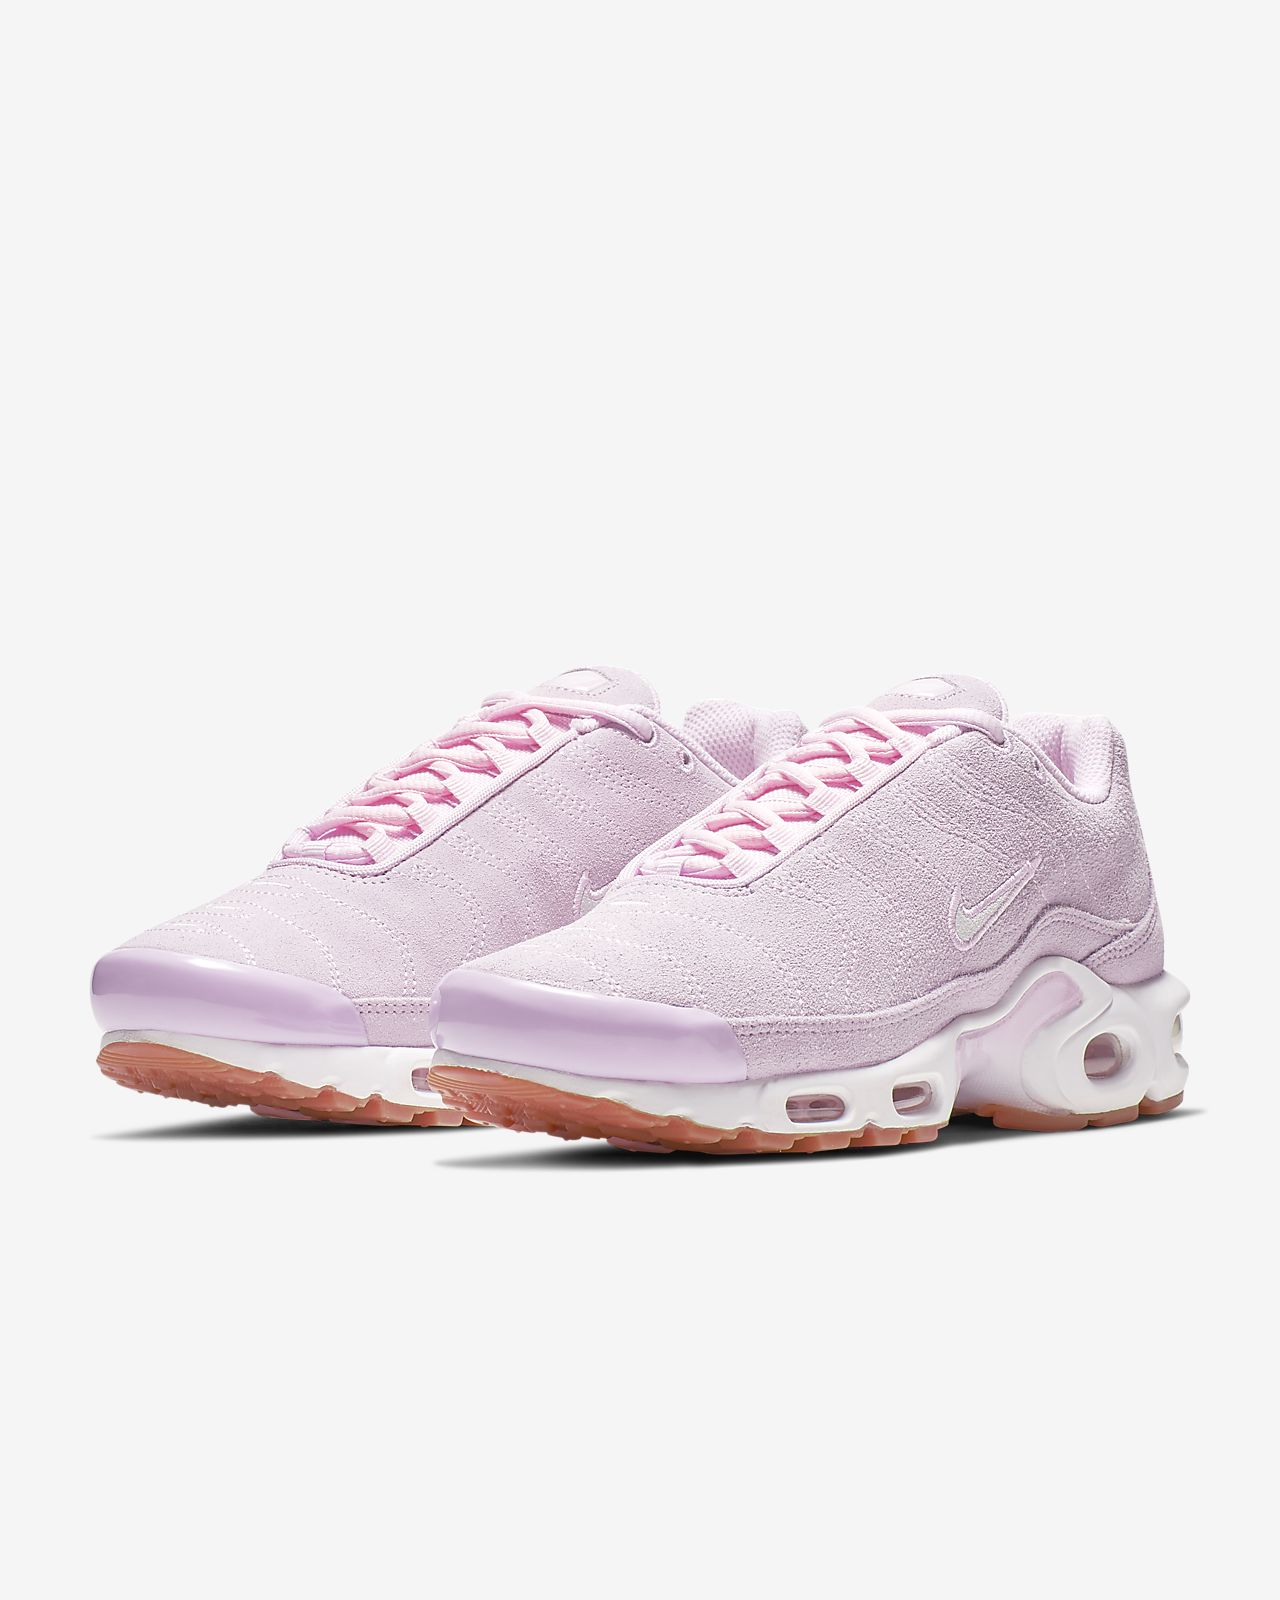 100% authentic 83e51 9eefd Nike Air Max Plus Premium Women's Shoe